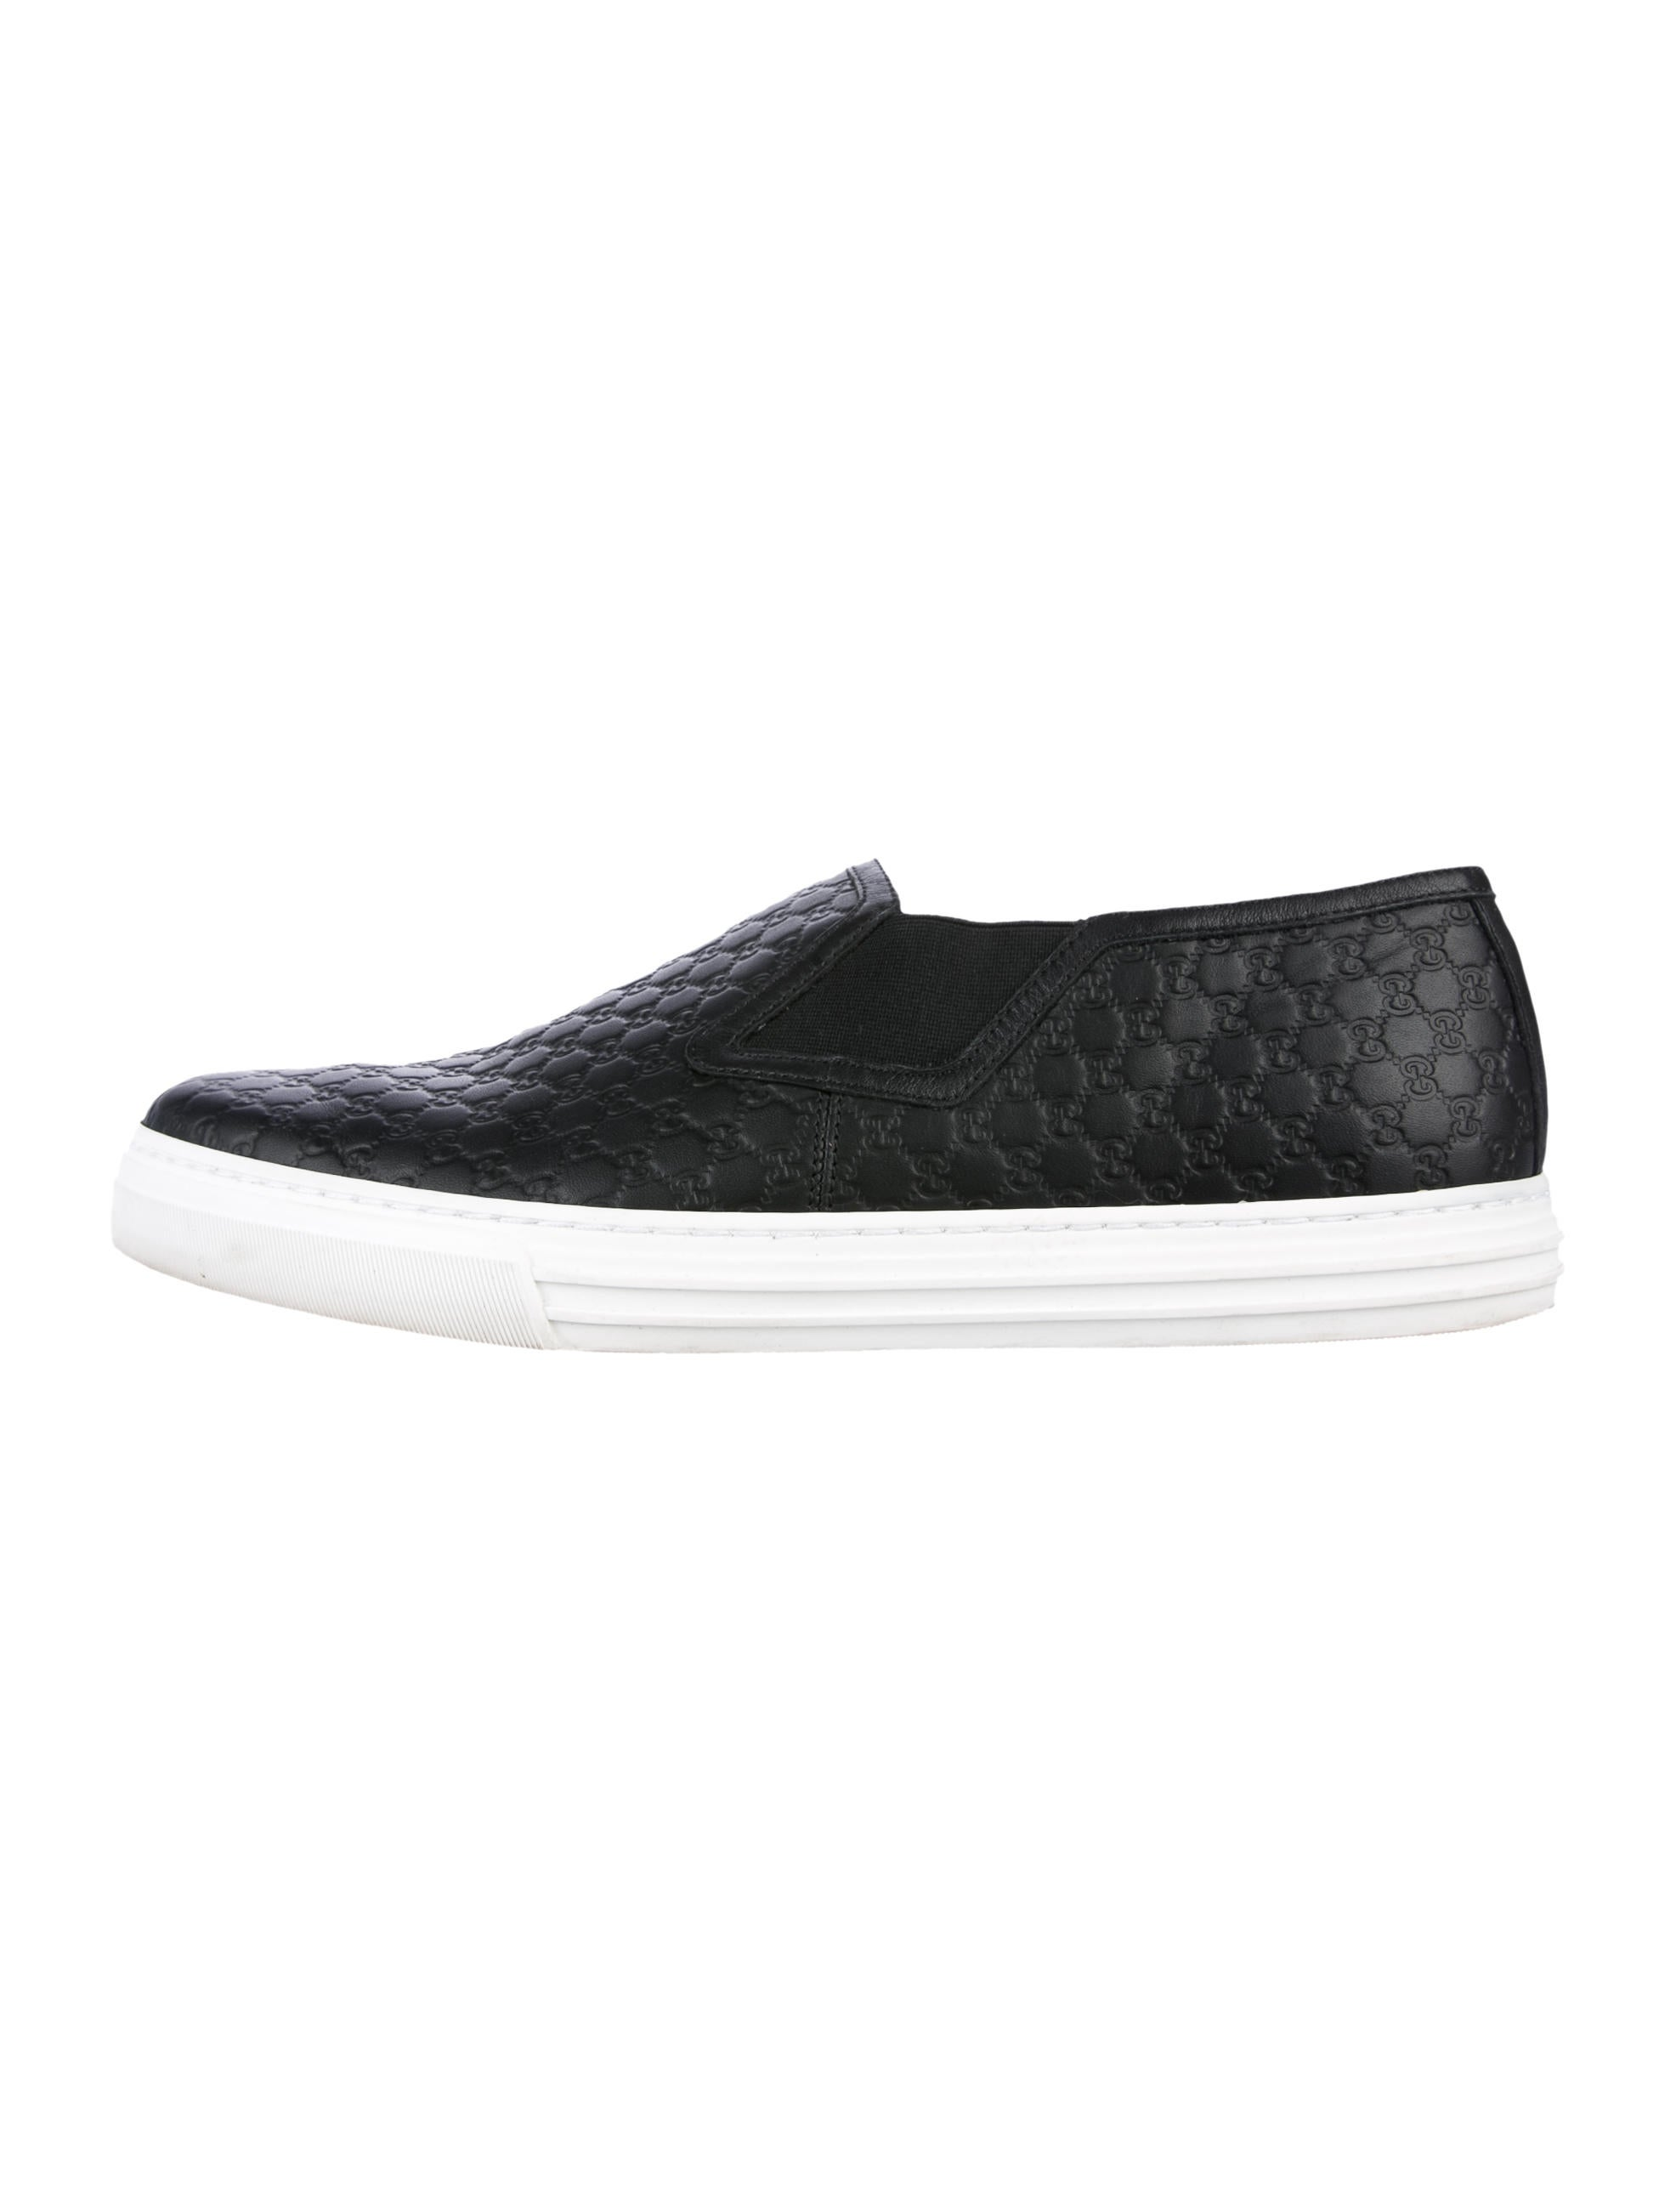 902d37394 Gucci Microguccissima Slip-On Sneakers - Shoes - GUC186114 | The ...